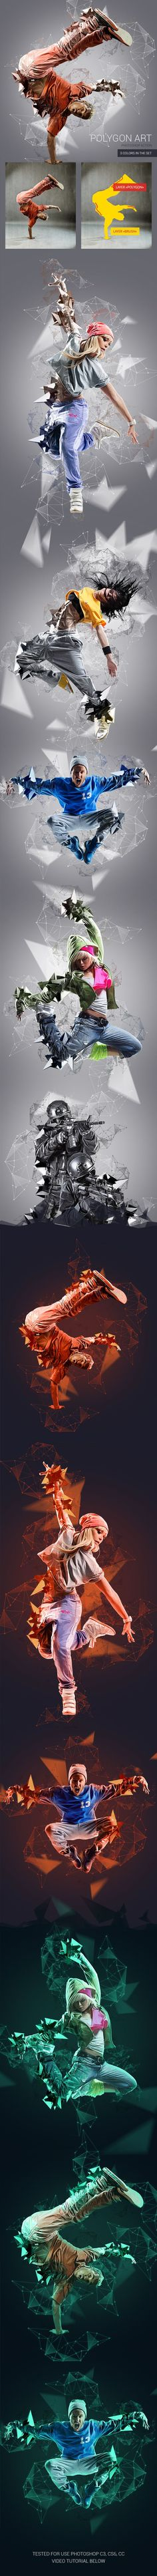 Polygon Art Photoshop Action. Download here: https://graphicriver.net/item/polygon-art-photoshop-action/17372615?ref=ksioks